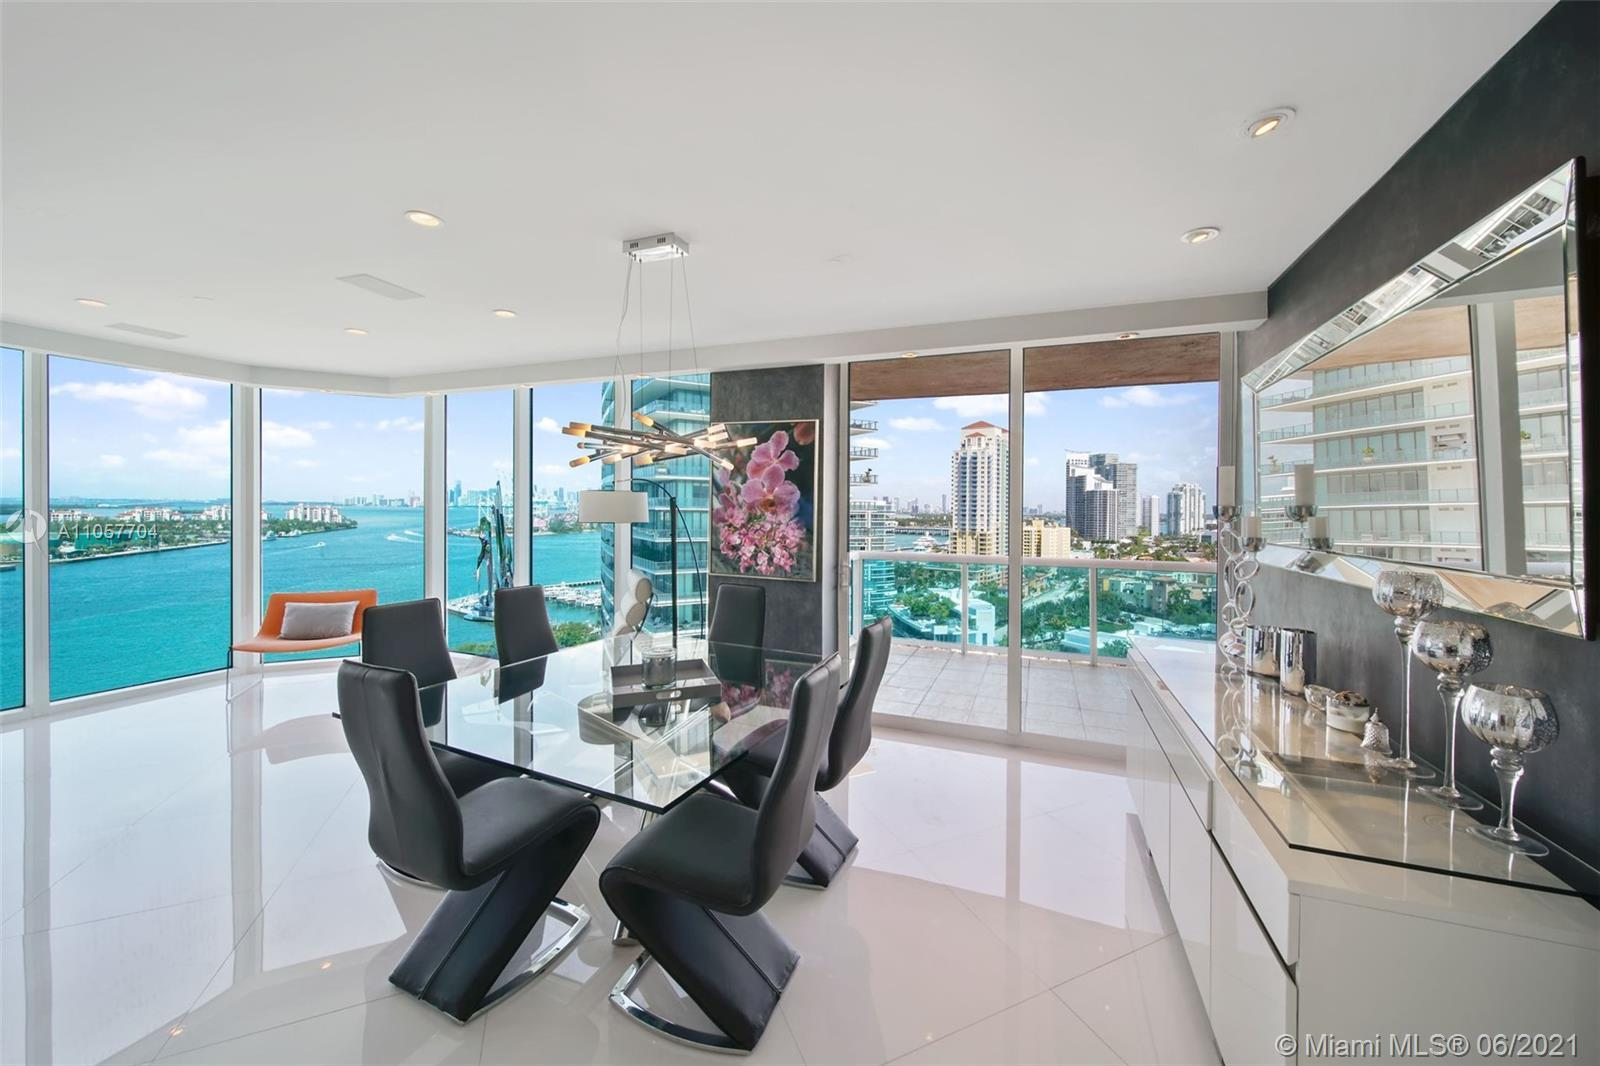 Completely remodeled 3 bedroom corner residence with incredible attention to detail.Modern finishes